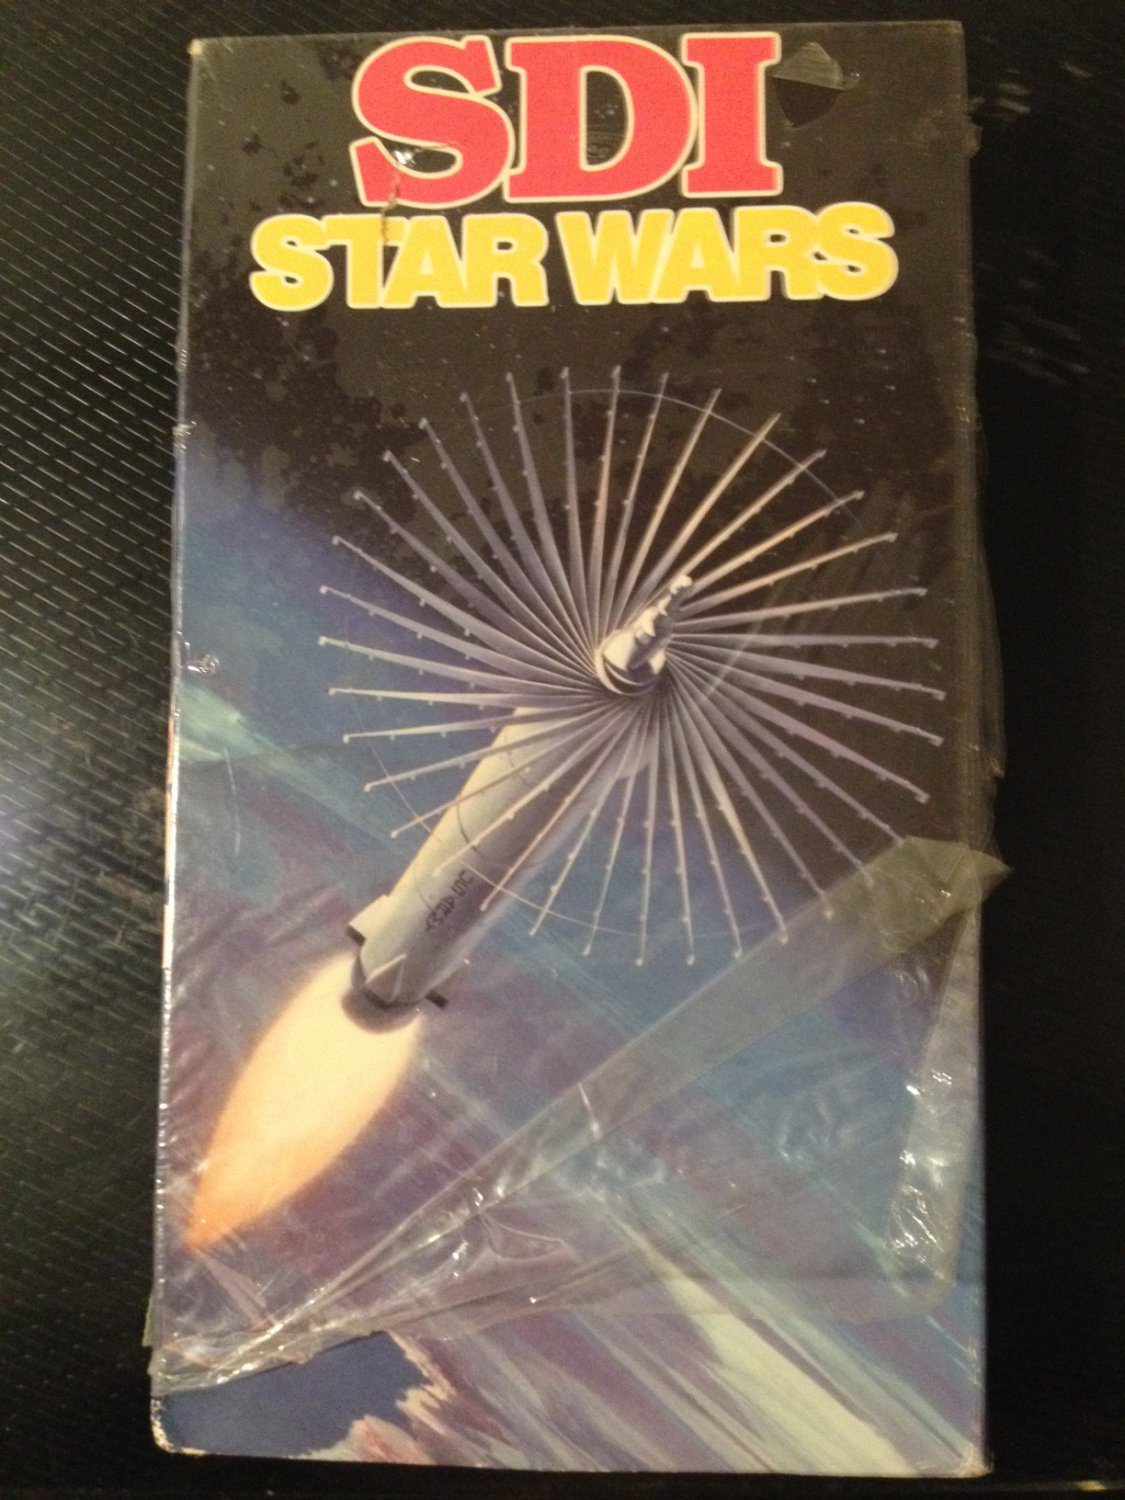 VHS - SDI Star Wars - Used - NOT ON DVD